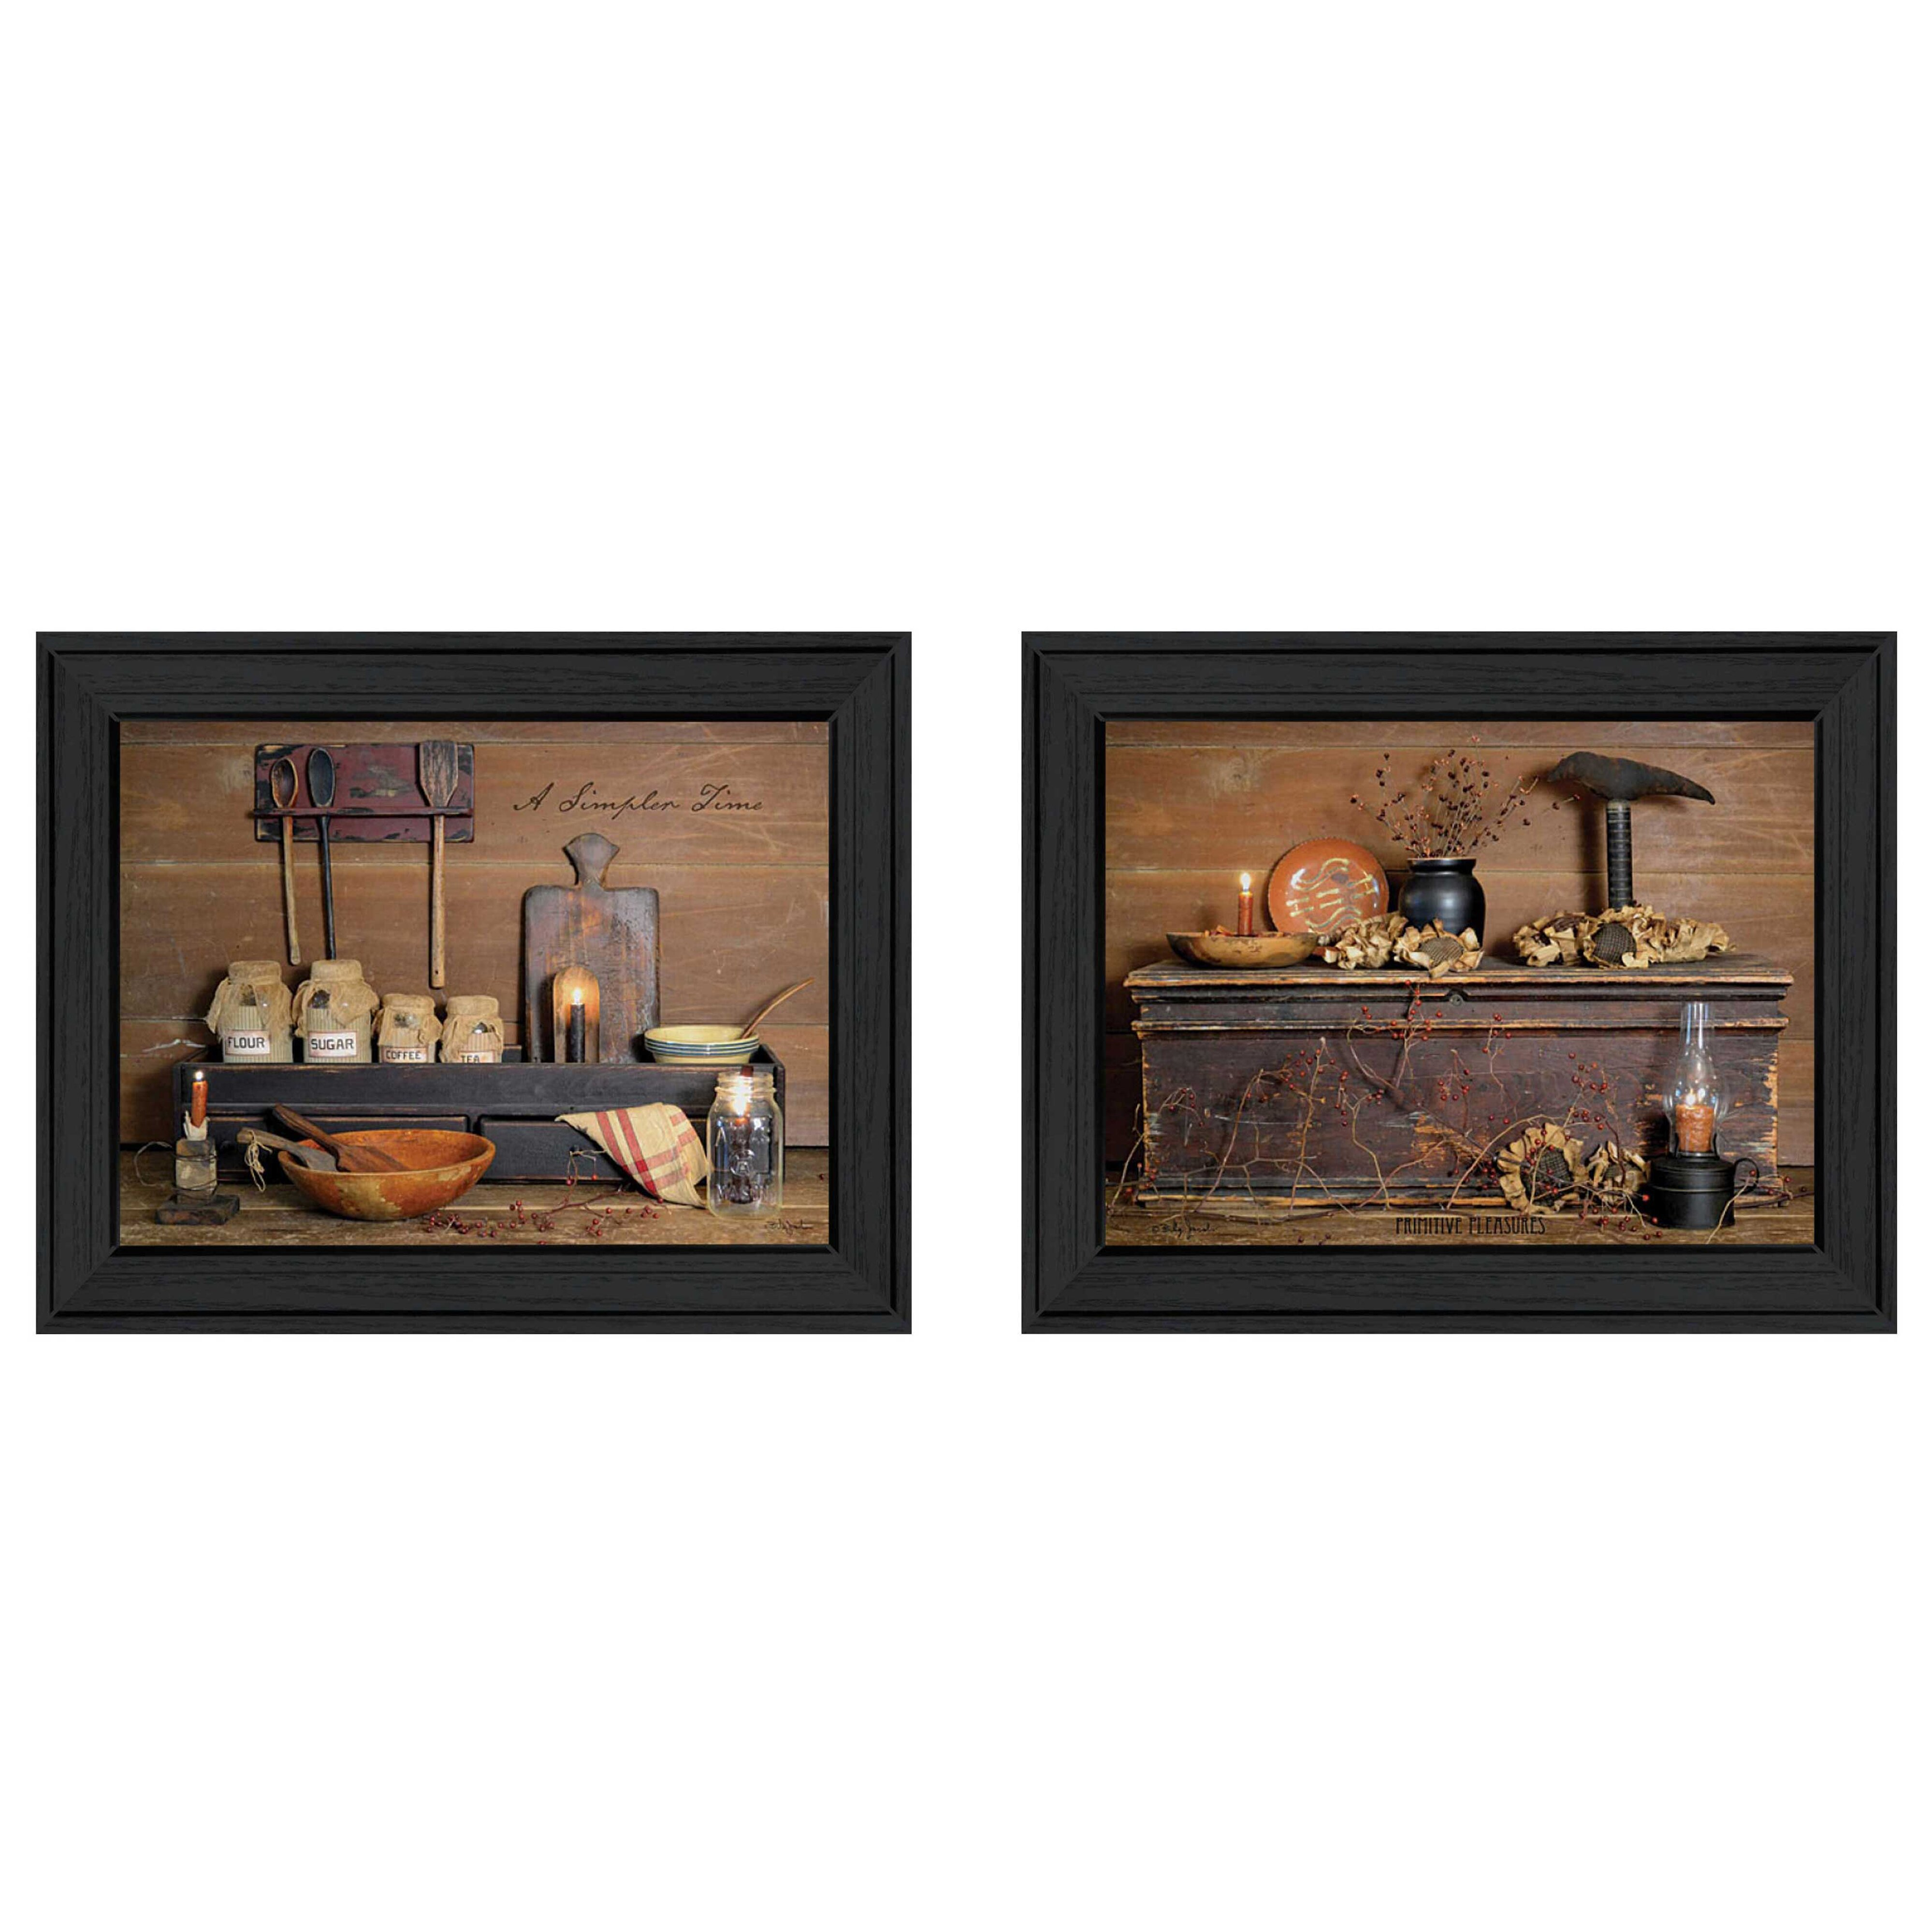 Trendy decor 4u 39 rustic 39 by billy jacobs 2 piece framed for Home decor 4 u